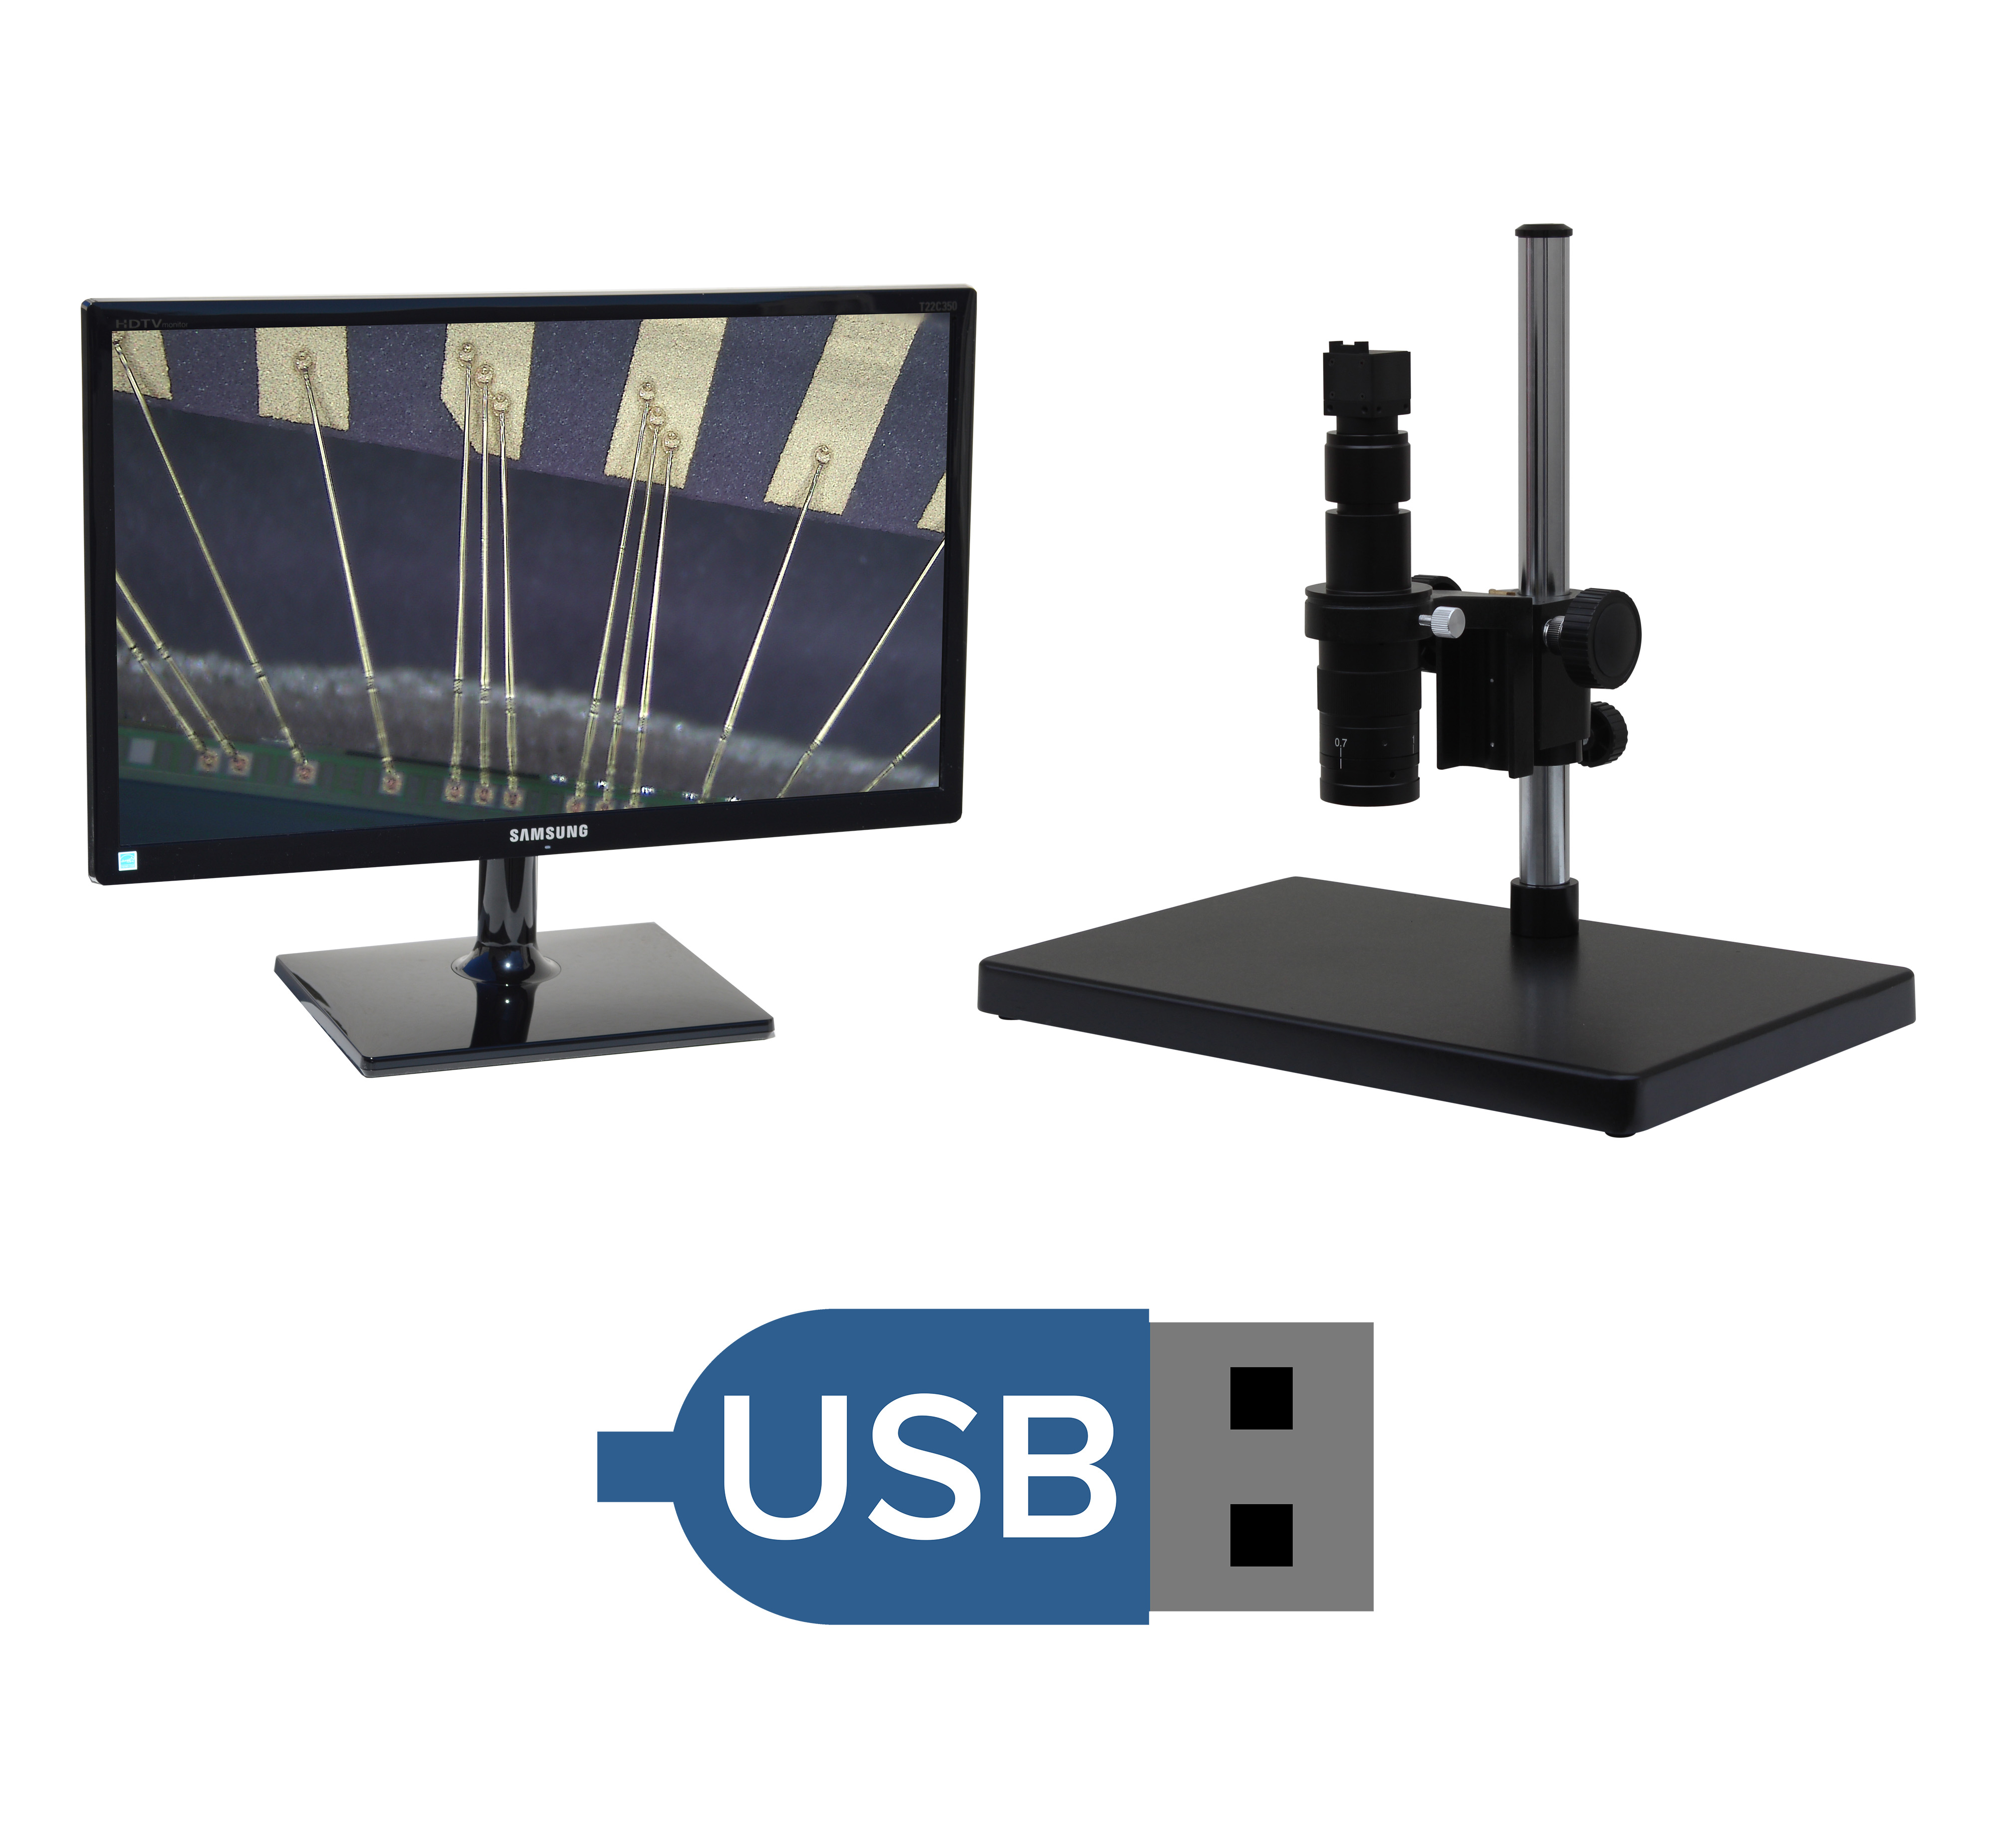 eUSx305 series 24x-160x or possible 12x-320x USB Microscope (3, 10 or 14 MP) with Measurement/Image Processing (PC Required) [Starting at $849]